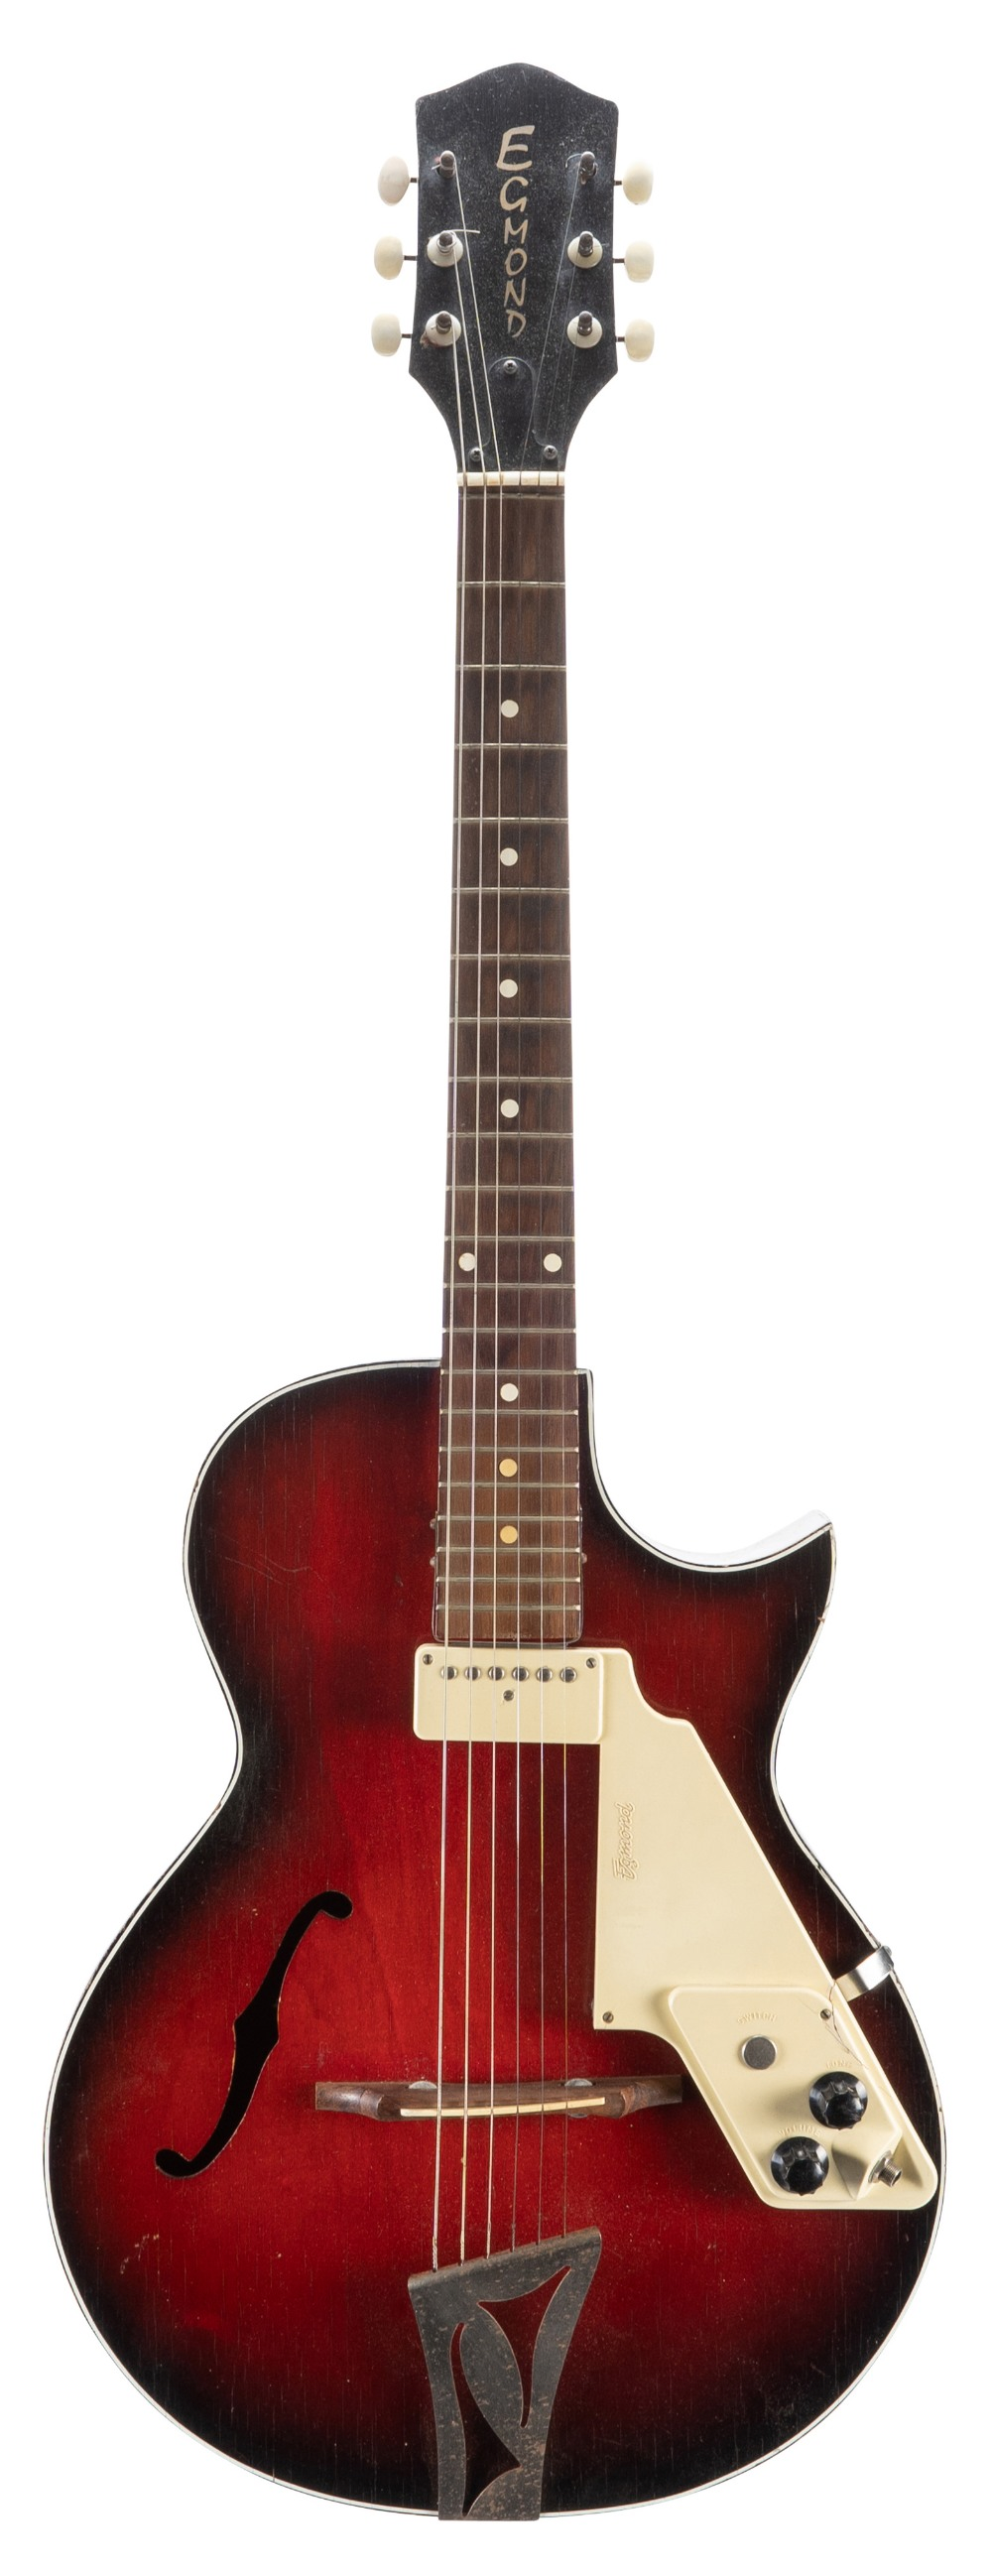 1960s Egmond Lucky 7 hollow body electric guitar in need of attention; Finish: red burst, various